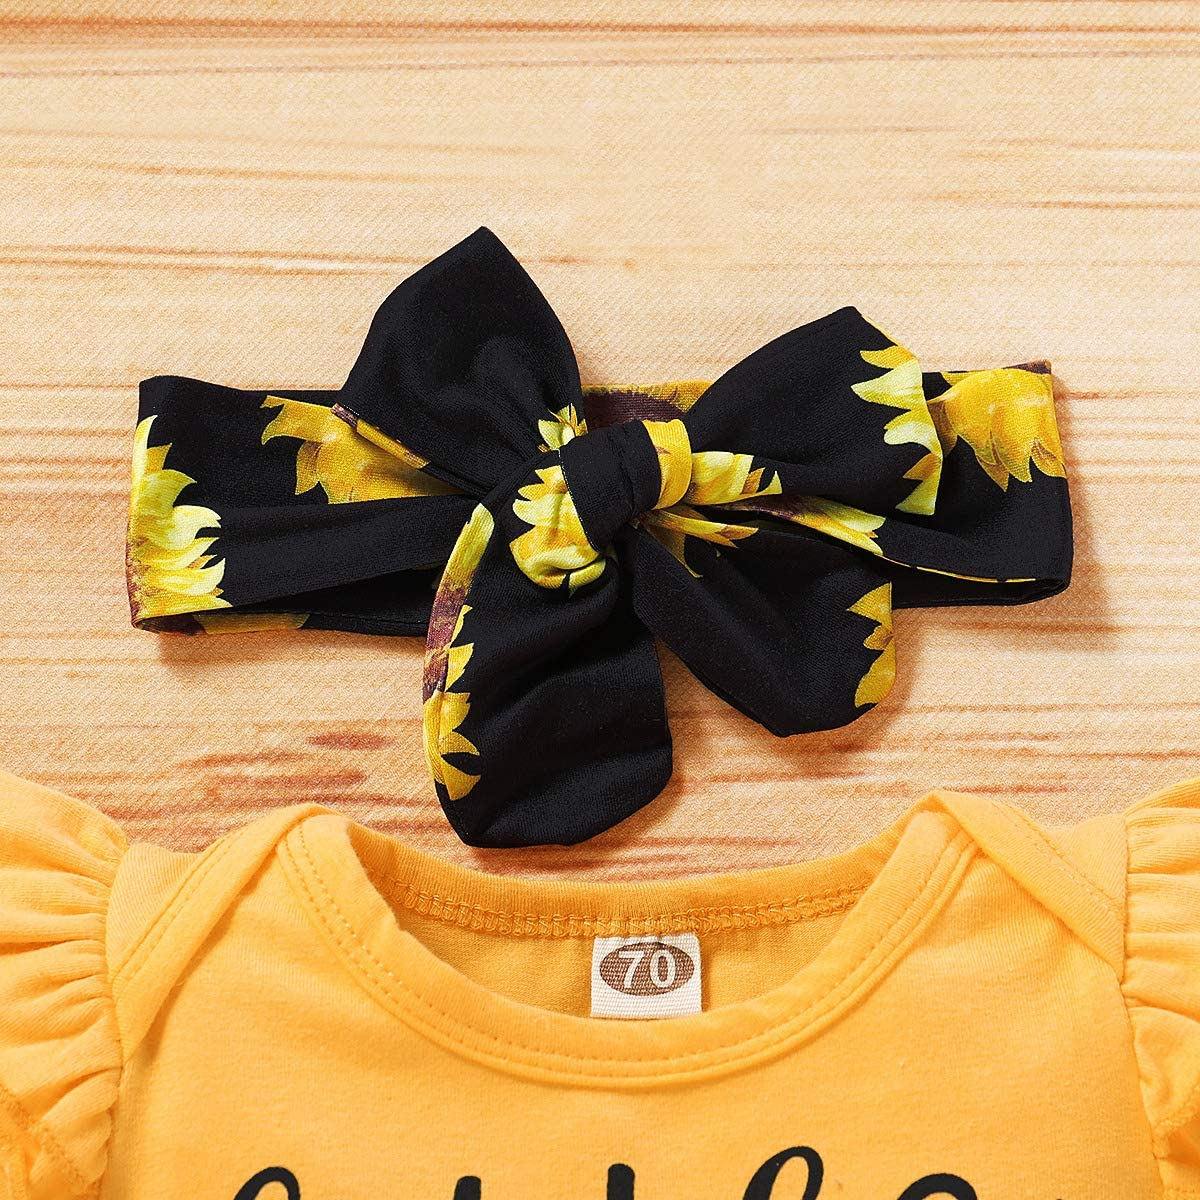 Headband Little Miss Sassy Pants 0-24M Geagodelia Baby Girl Clothing Outfit Set Newborn Toddler Sunflower Clothes Bodysuit Top Pants Shorts